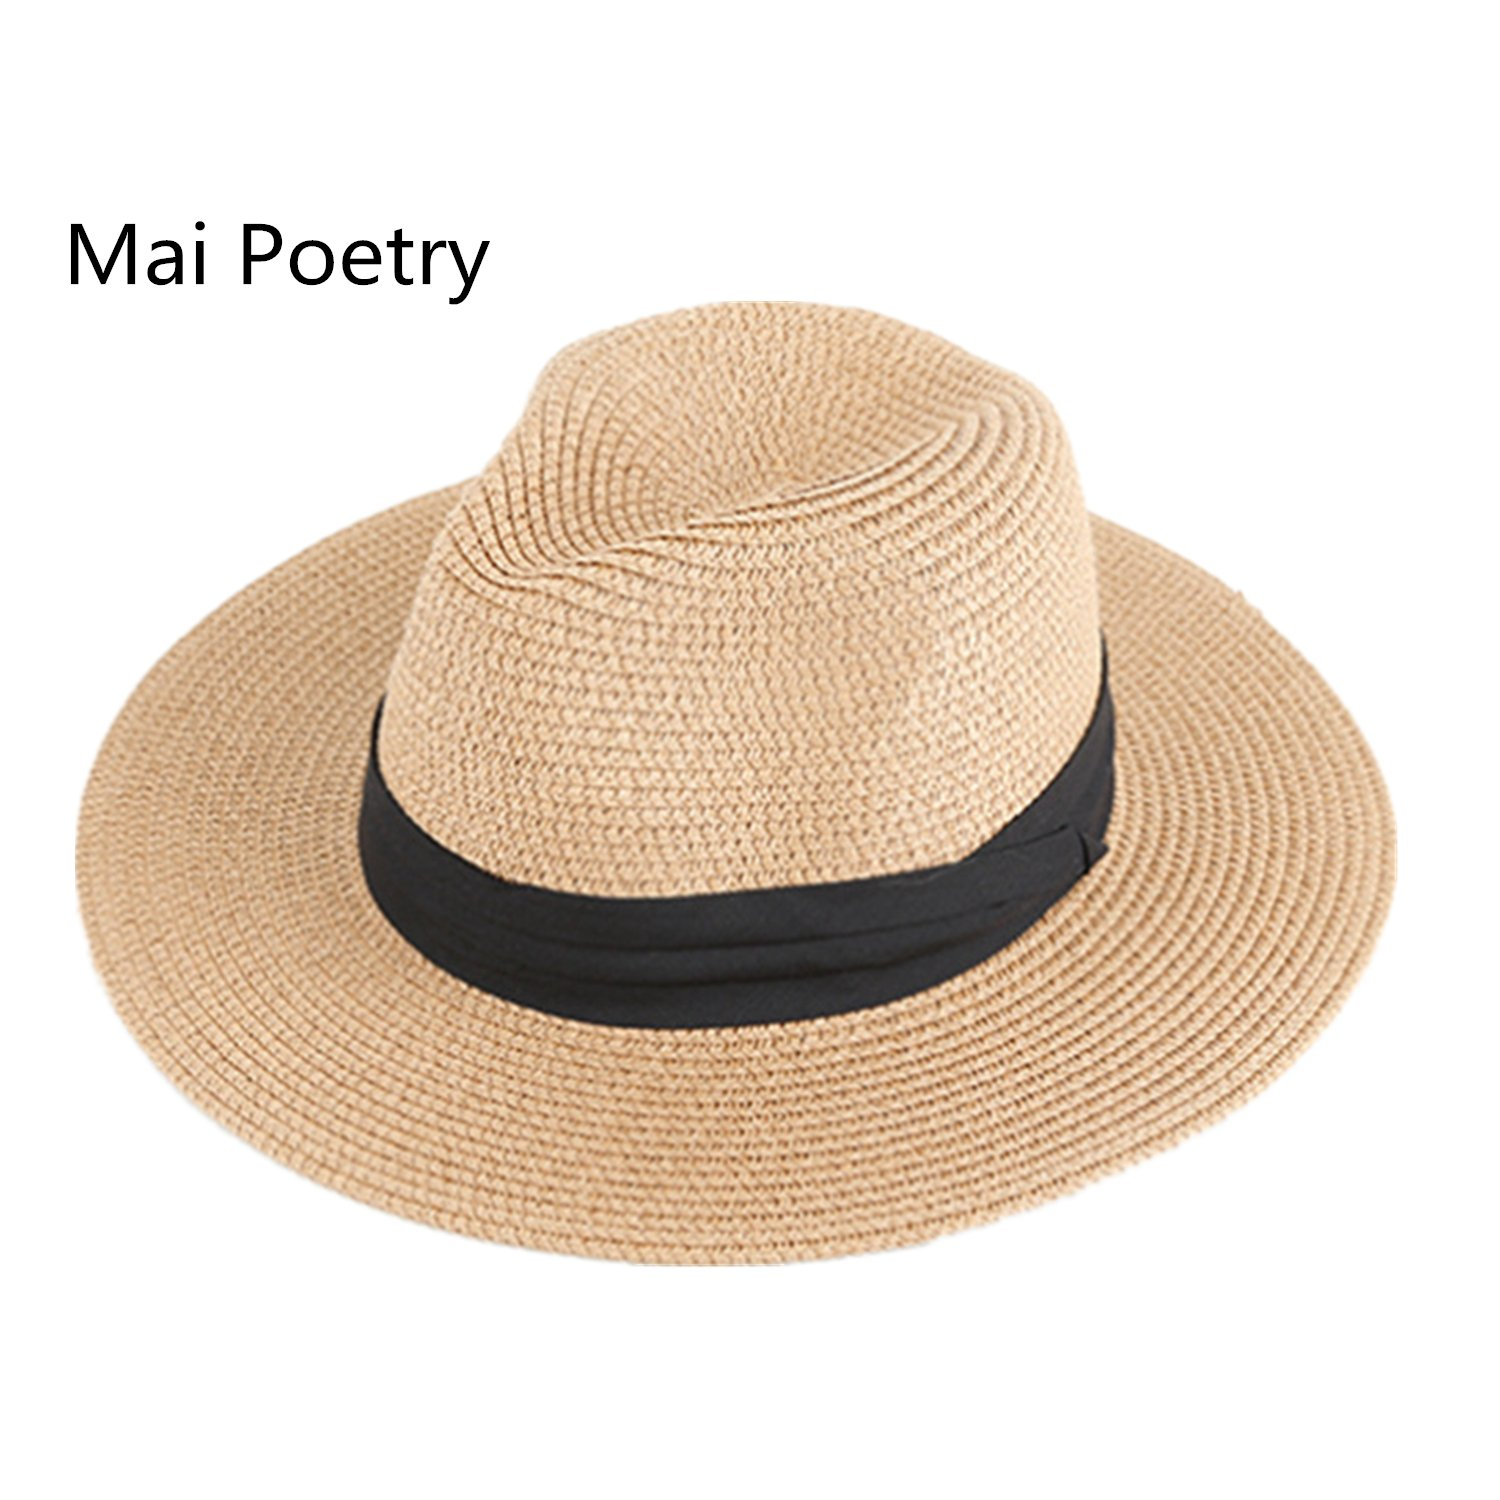 Women's and Men's Panama Hat Foldable Packable Straw Beach Summer Fedora Sun Hat Beige)